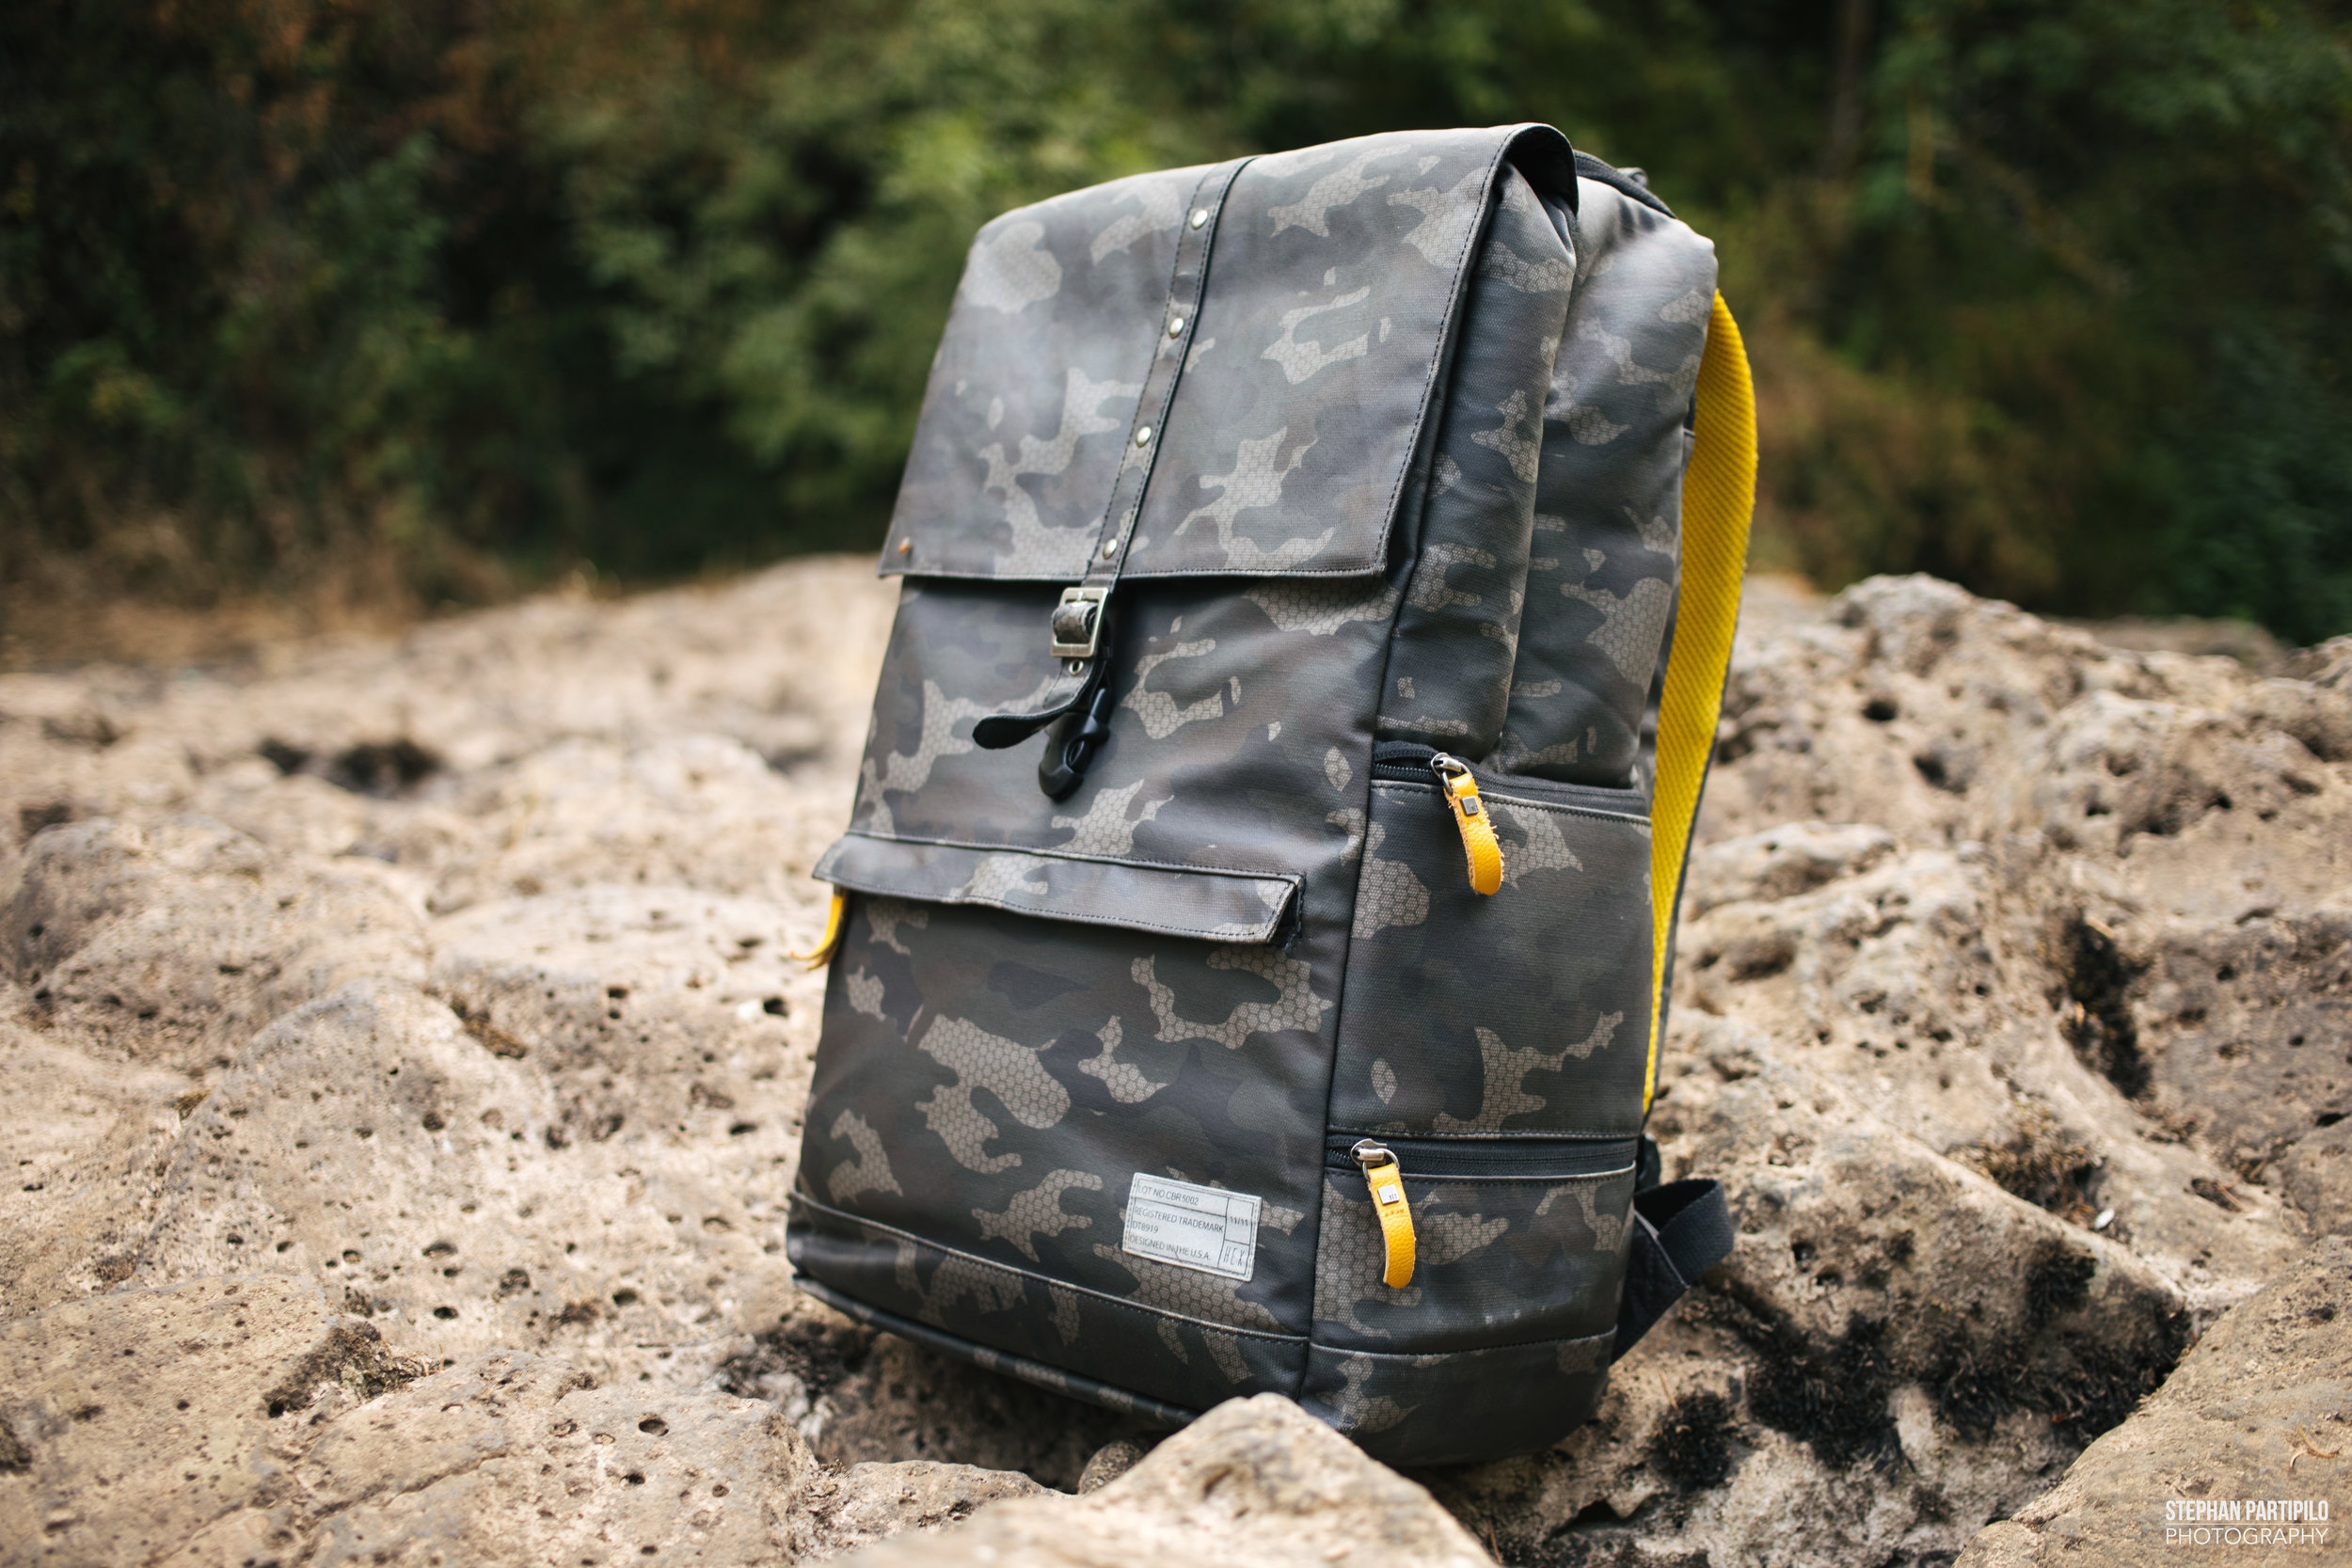 HEX Backpack August 2017 0G5A4311.jpg